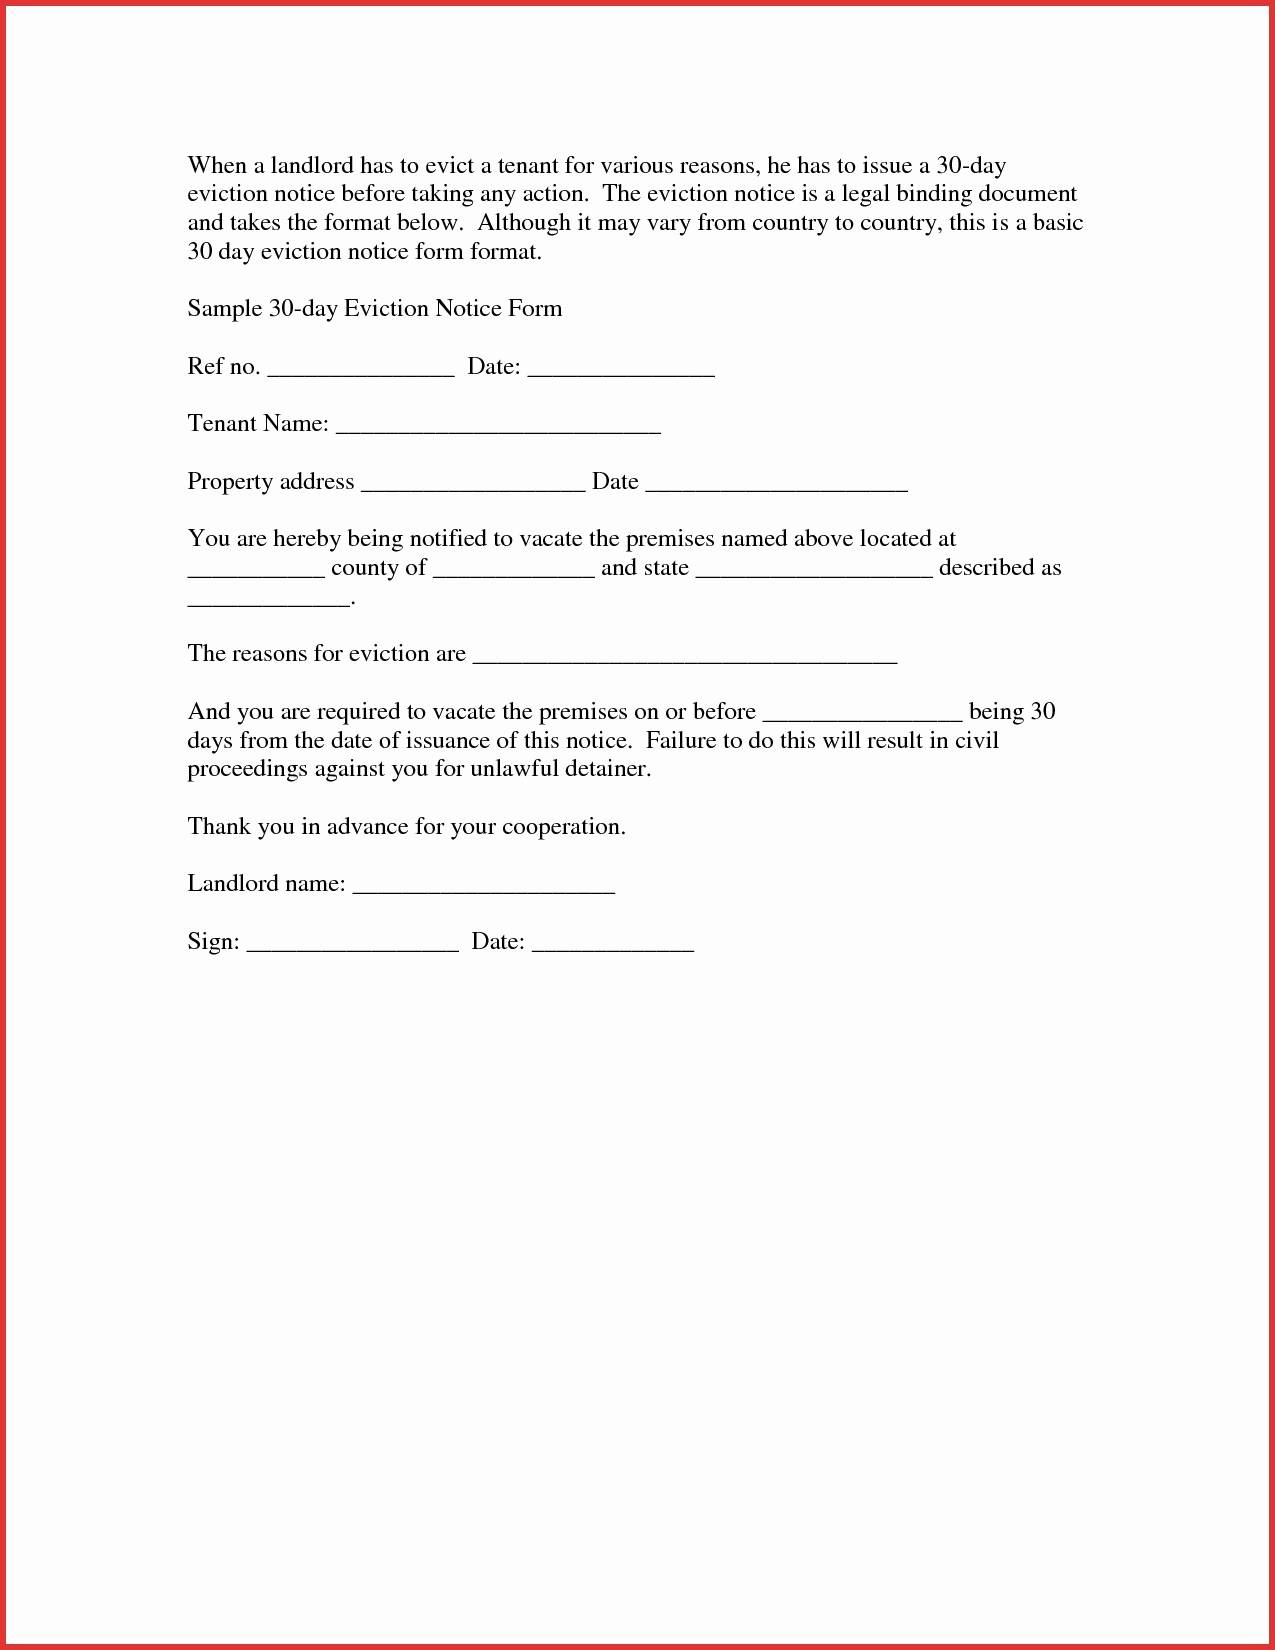 30 day eviction letter template example-Tenant Eviction Letter Template Best Free Eviction Notice Template Idealstalist 3-p